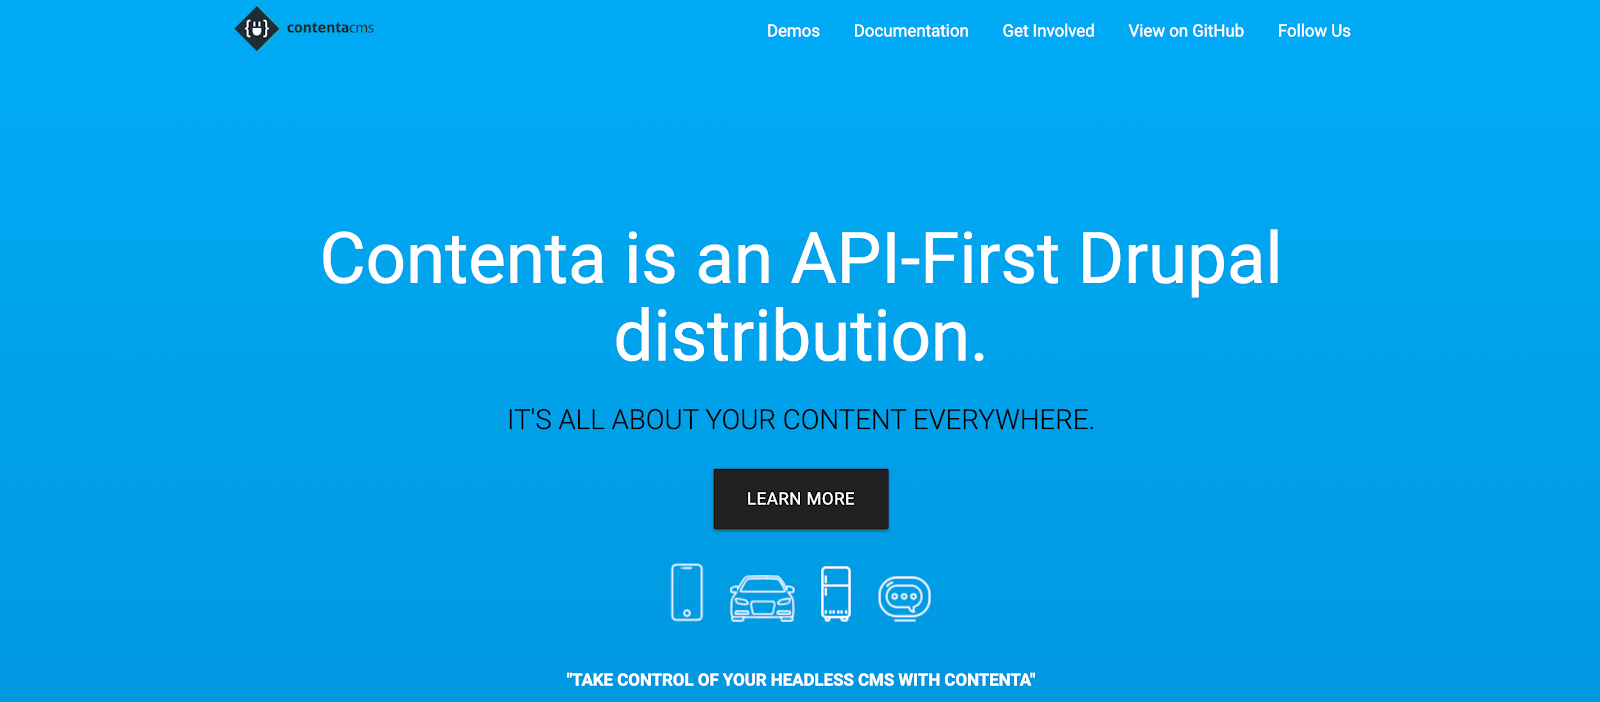 Contenta is a Drupal-focused CMS and API-first platform